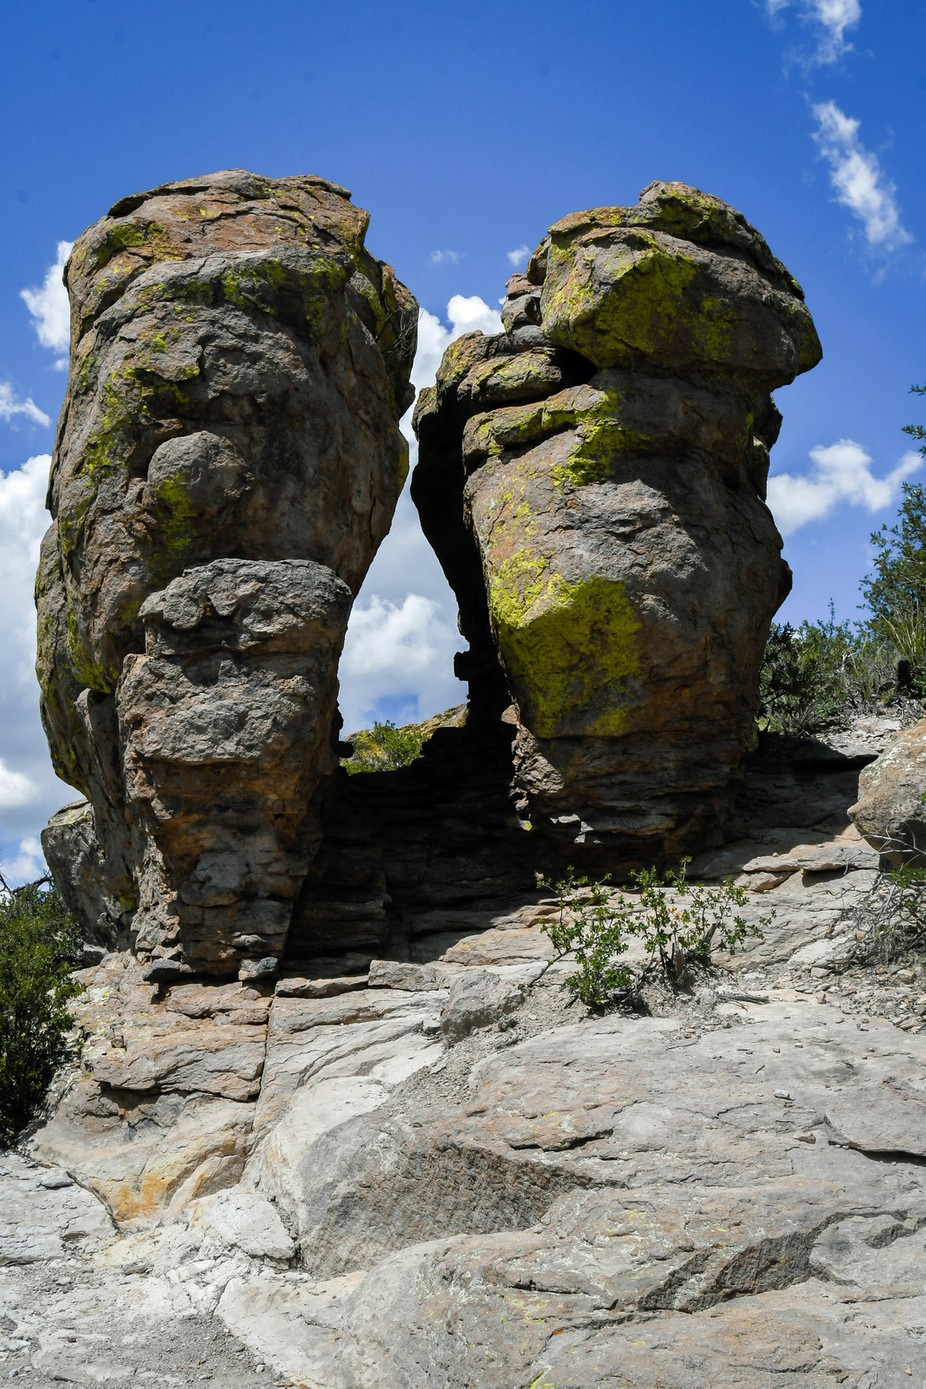 Massive boulders standing side by side at Massai Point in Chiricahua National Monument.